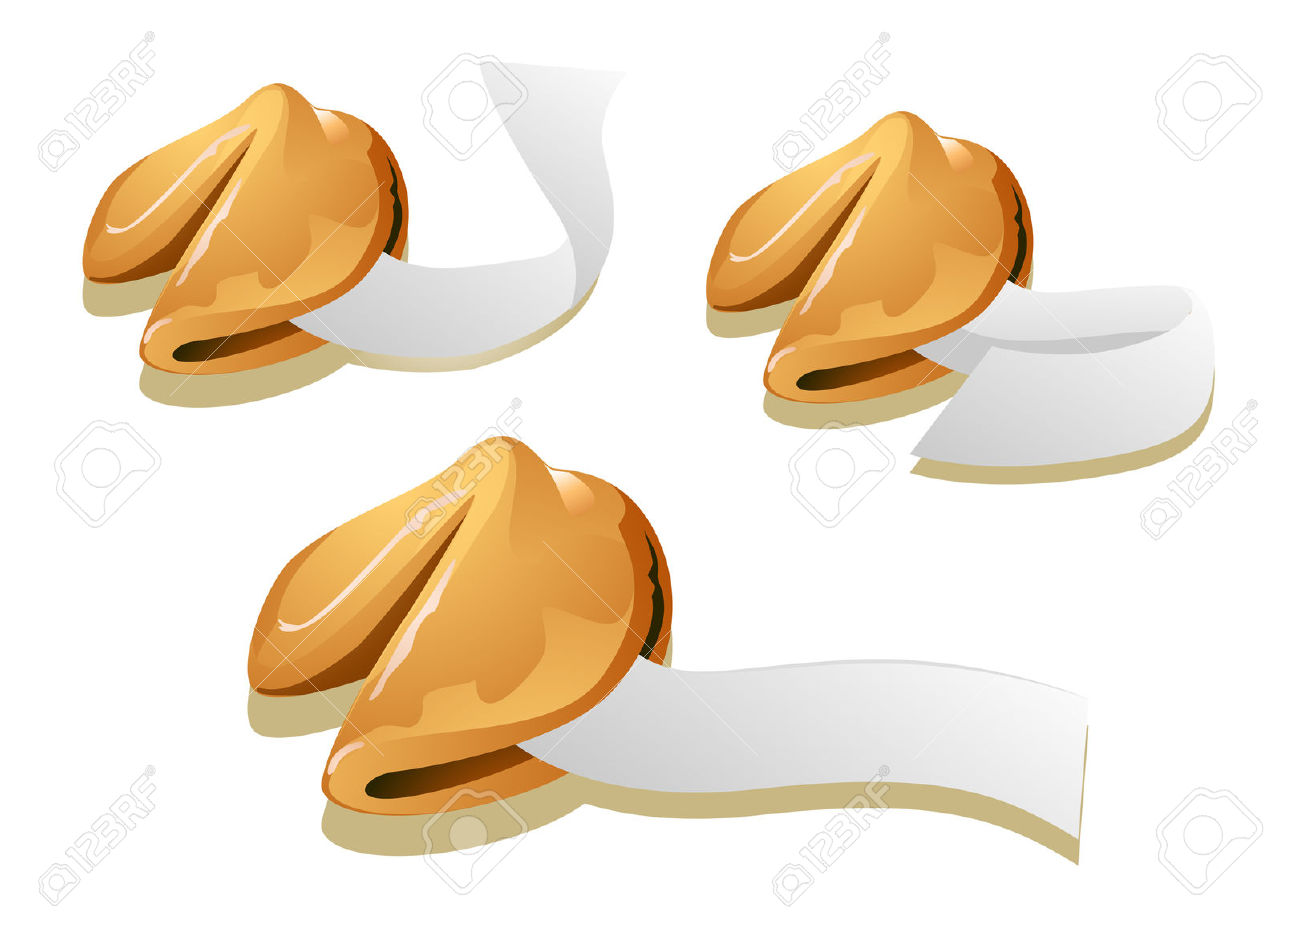 Fortune Cookies Royalty Free Cliparts, Vectors, And Stock.